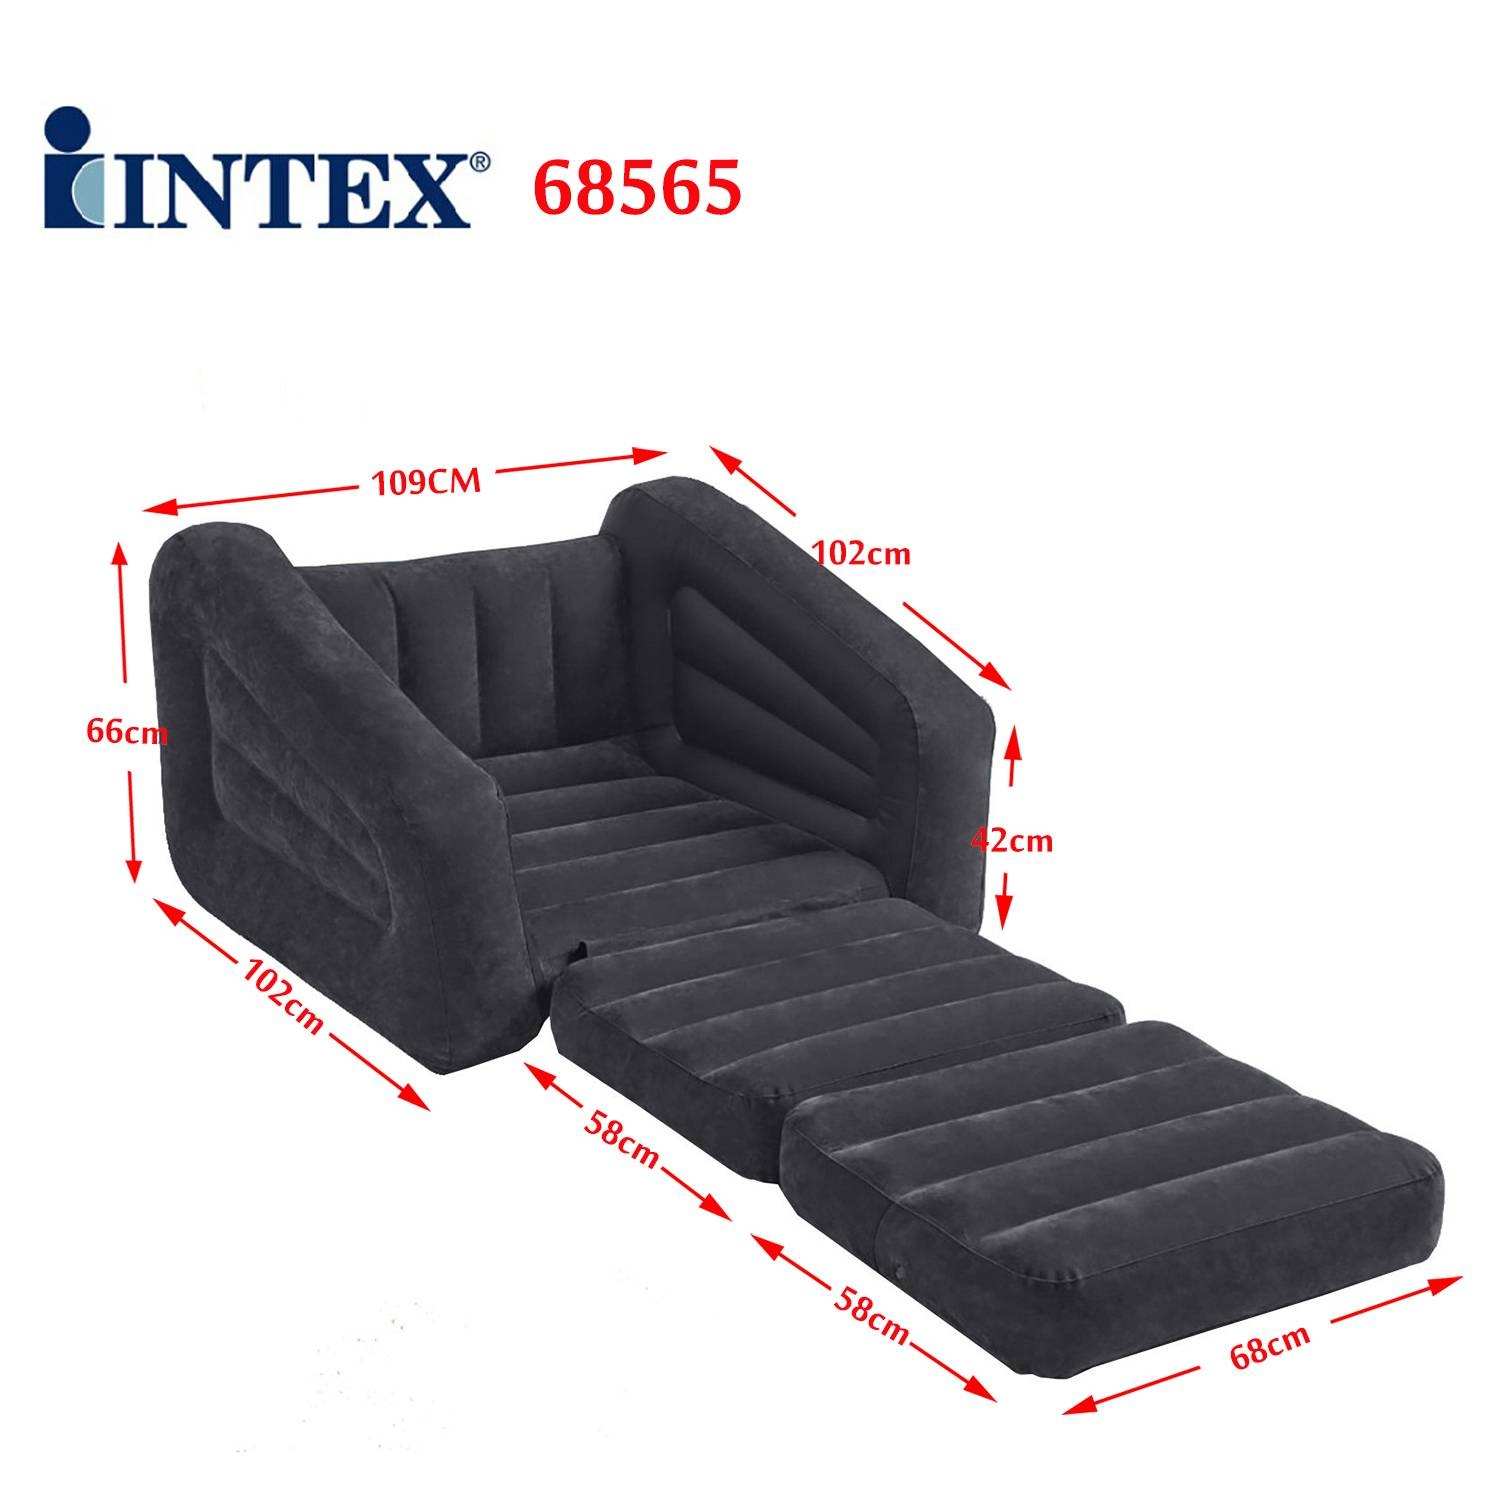 Intex Inflatable 1 Person Pull-Out Chair Sofa Air Bed 68565 | Ebay for Intex Pull Out Chairs (Image 5 of 15)